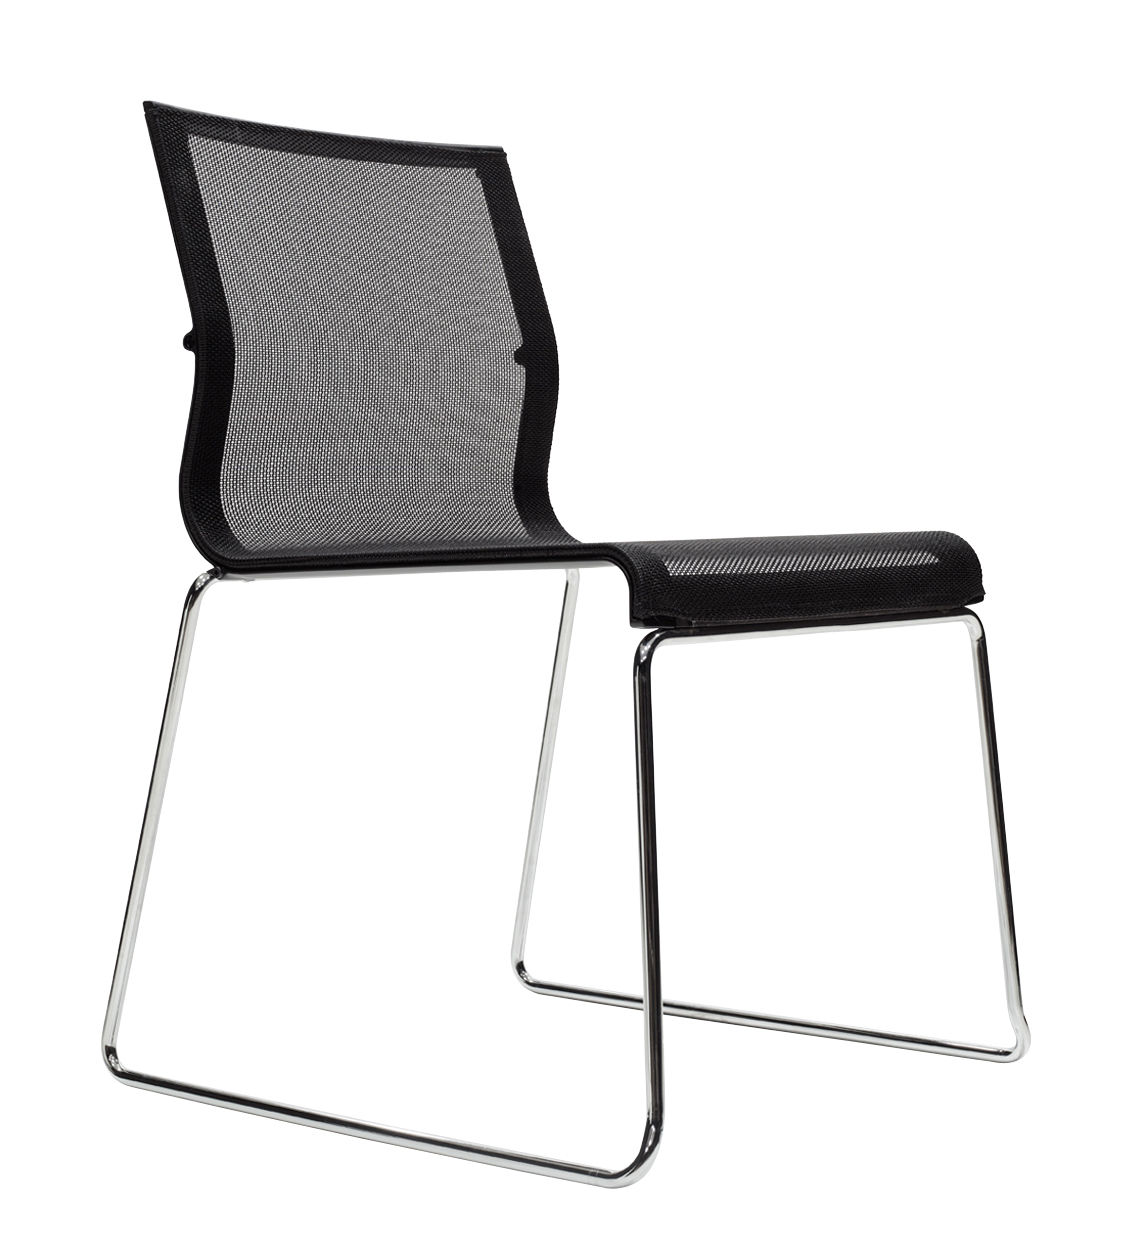 Furniture - Chairs - Stick Chair Stacking chair - Fabric seat by ICF - Black mesh / Chromium base / Black lacquered structure - Aluminium, Fabric, Steel